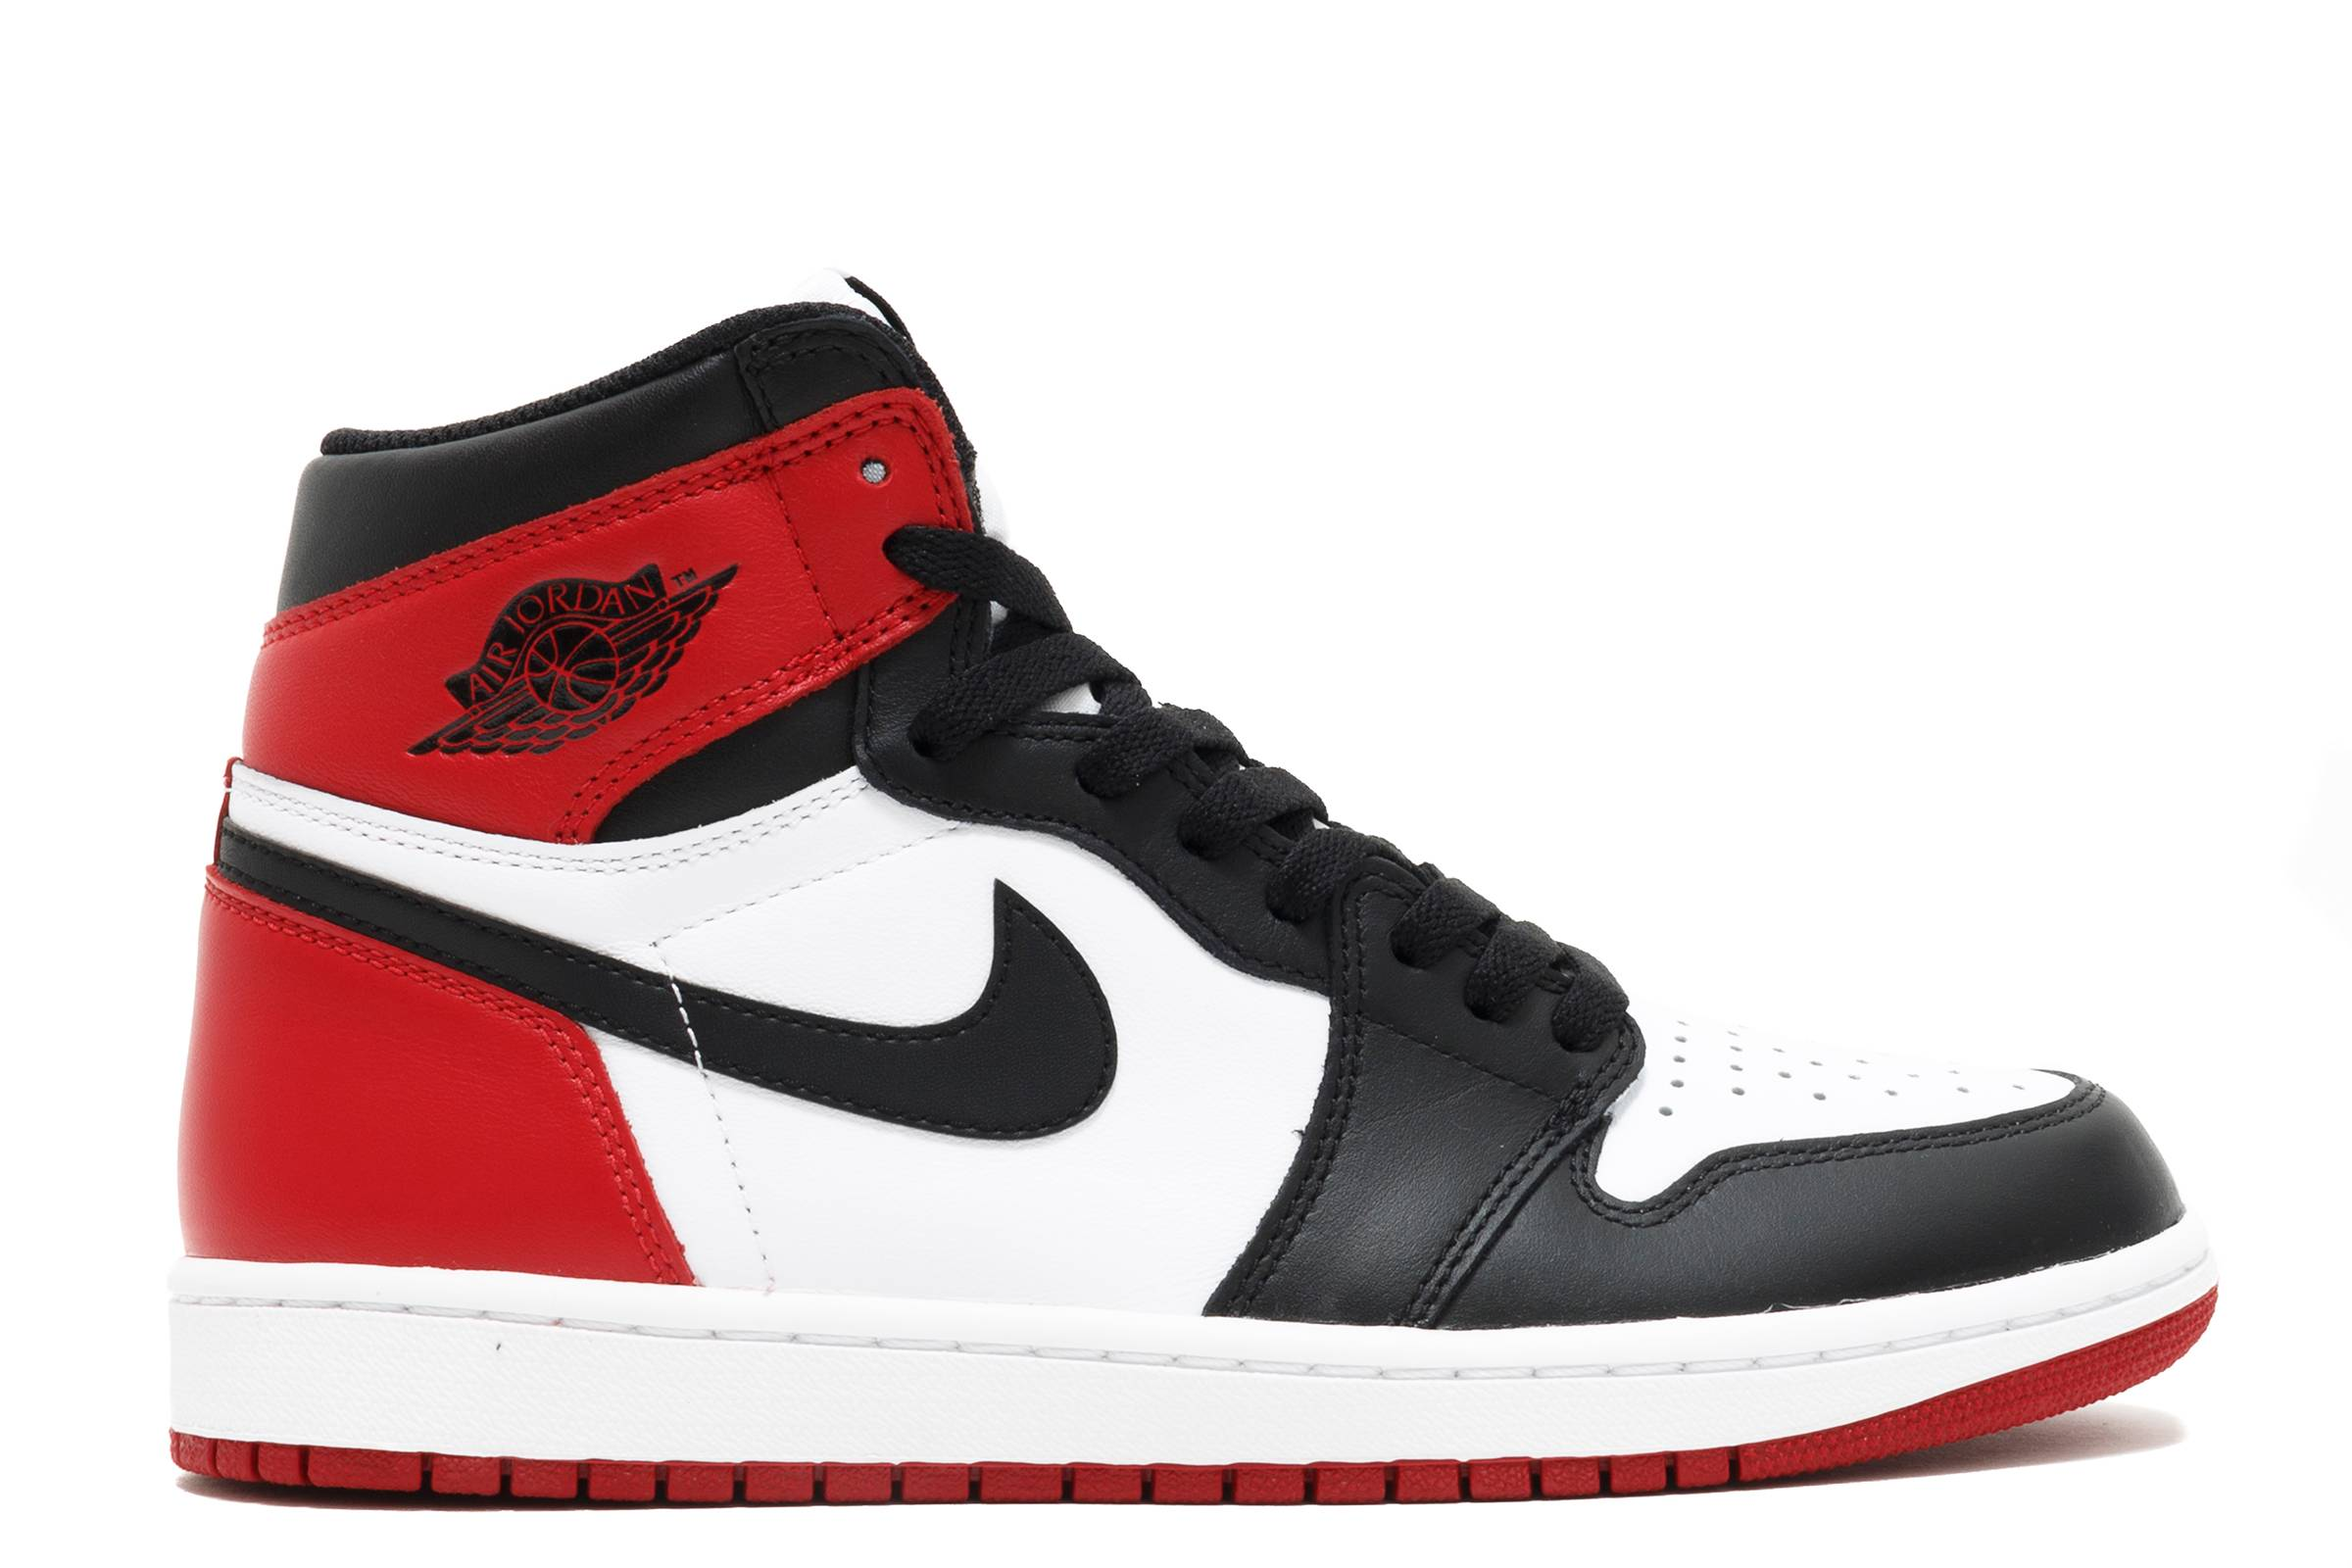 77edc0d1f34 The One That Started It All: A History of the Jordan 1 - Jordan 1 ...